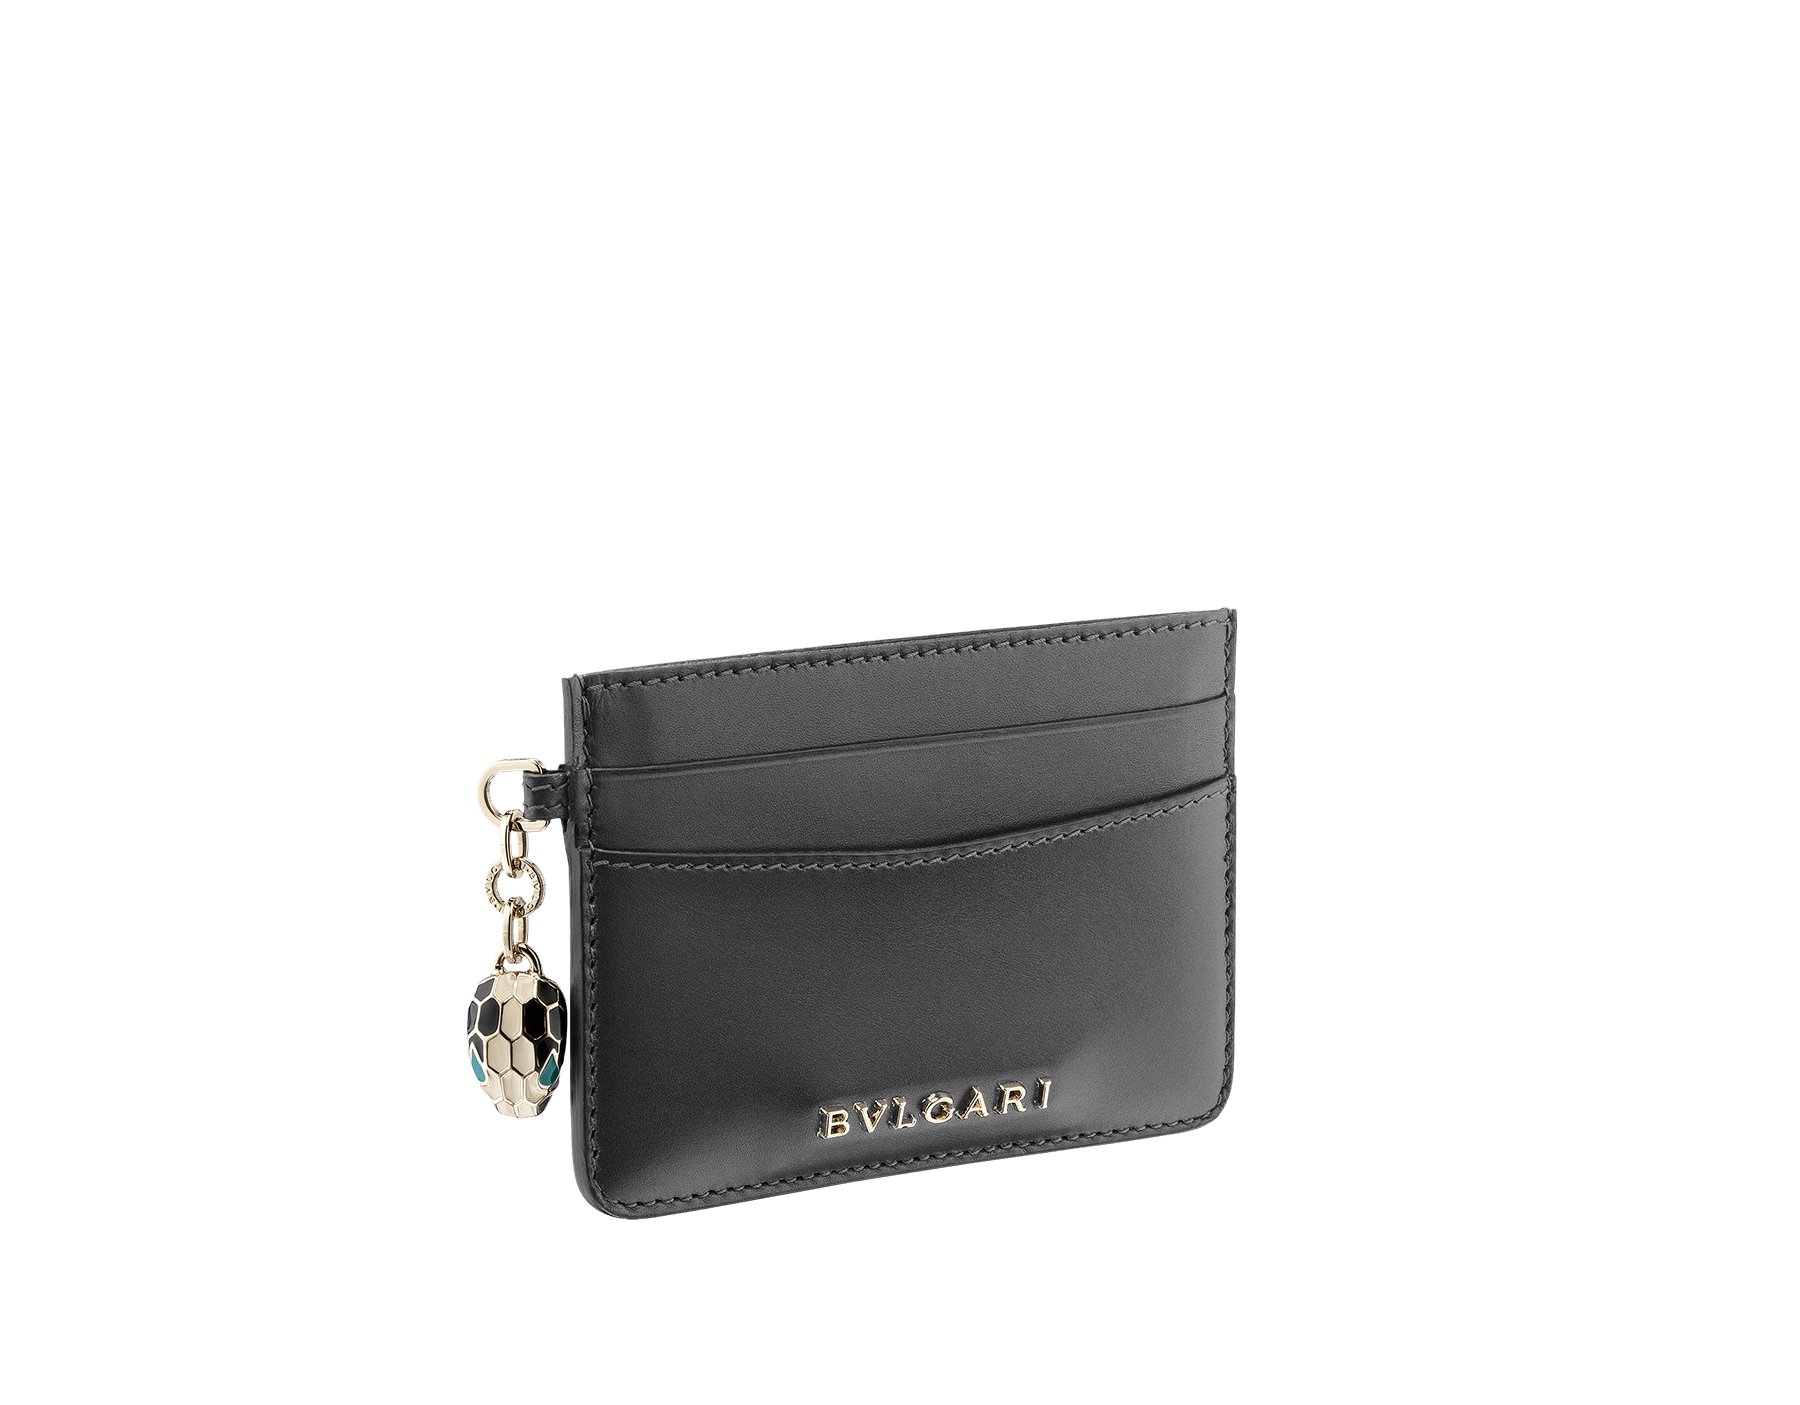 """Serpenti Forever"" card holder in Lavender Amethyst lilac calf leather. Iconic light gold-plated brass snakehead charm, finished with black and white agate enamel, and emerald green enamel eyes. SEA-CC-HOLDER-CLb image 1"